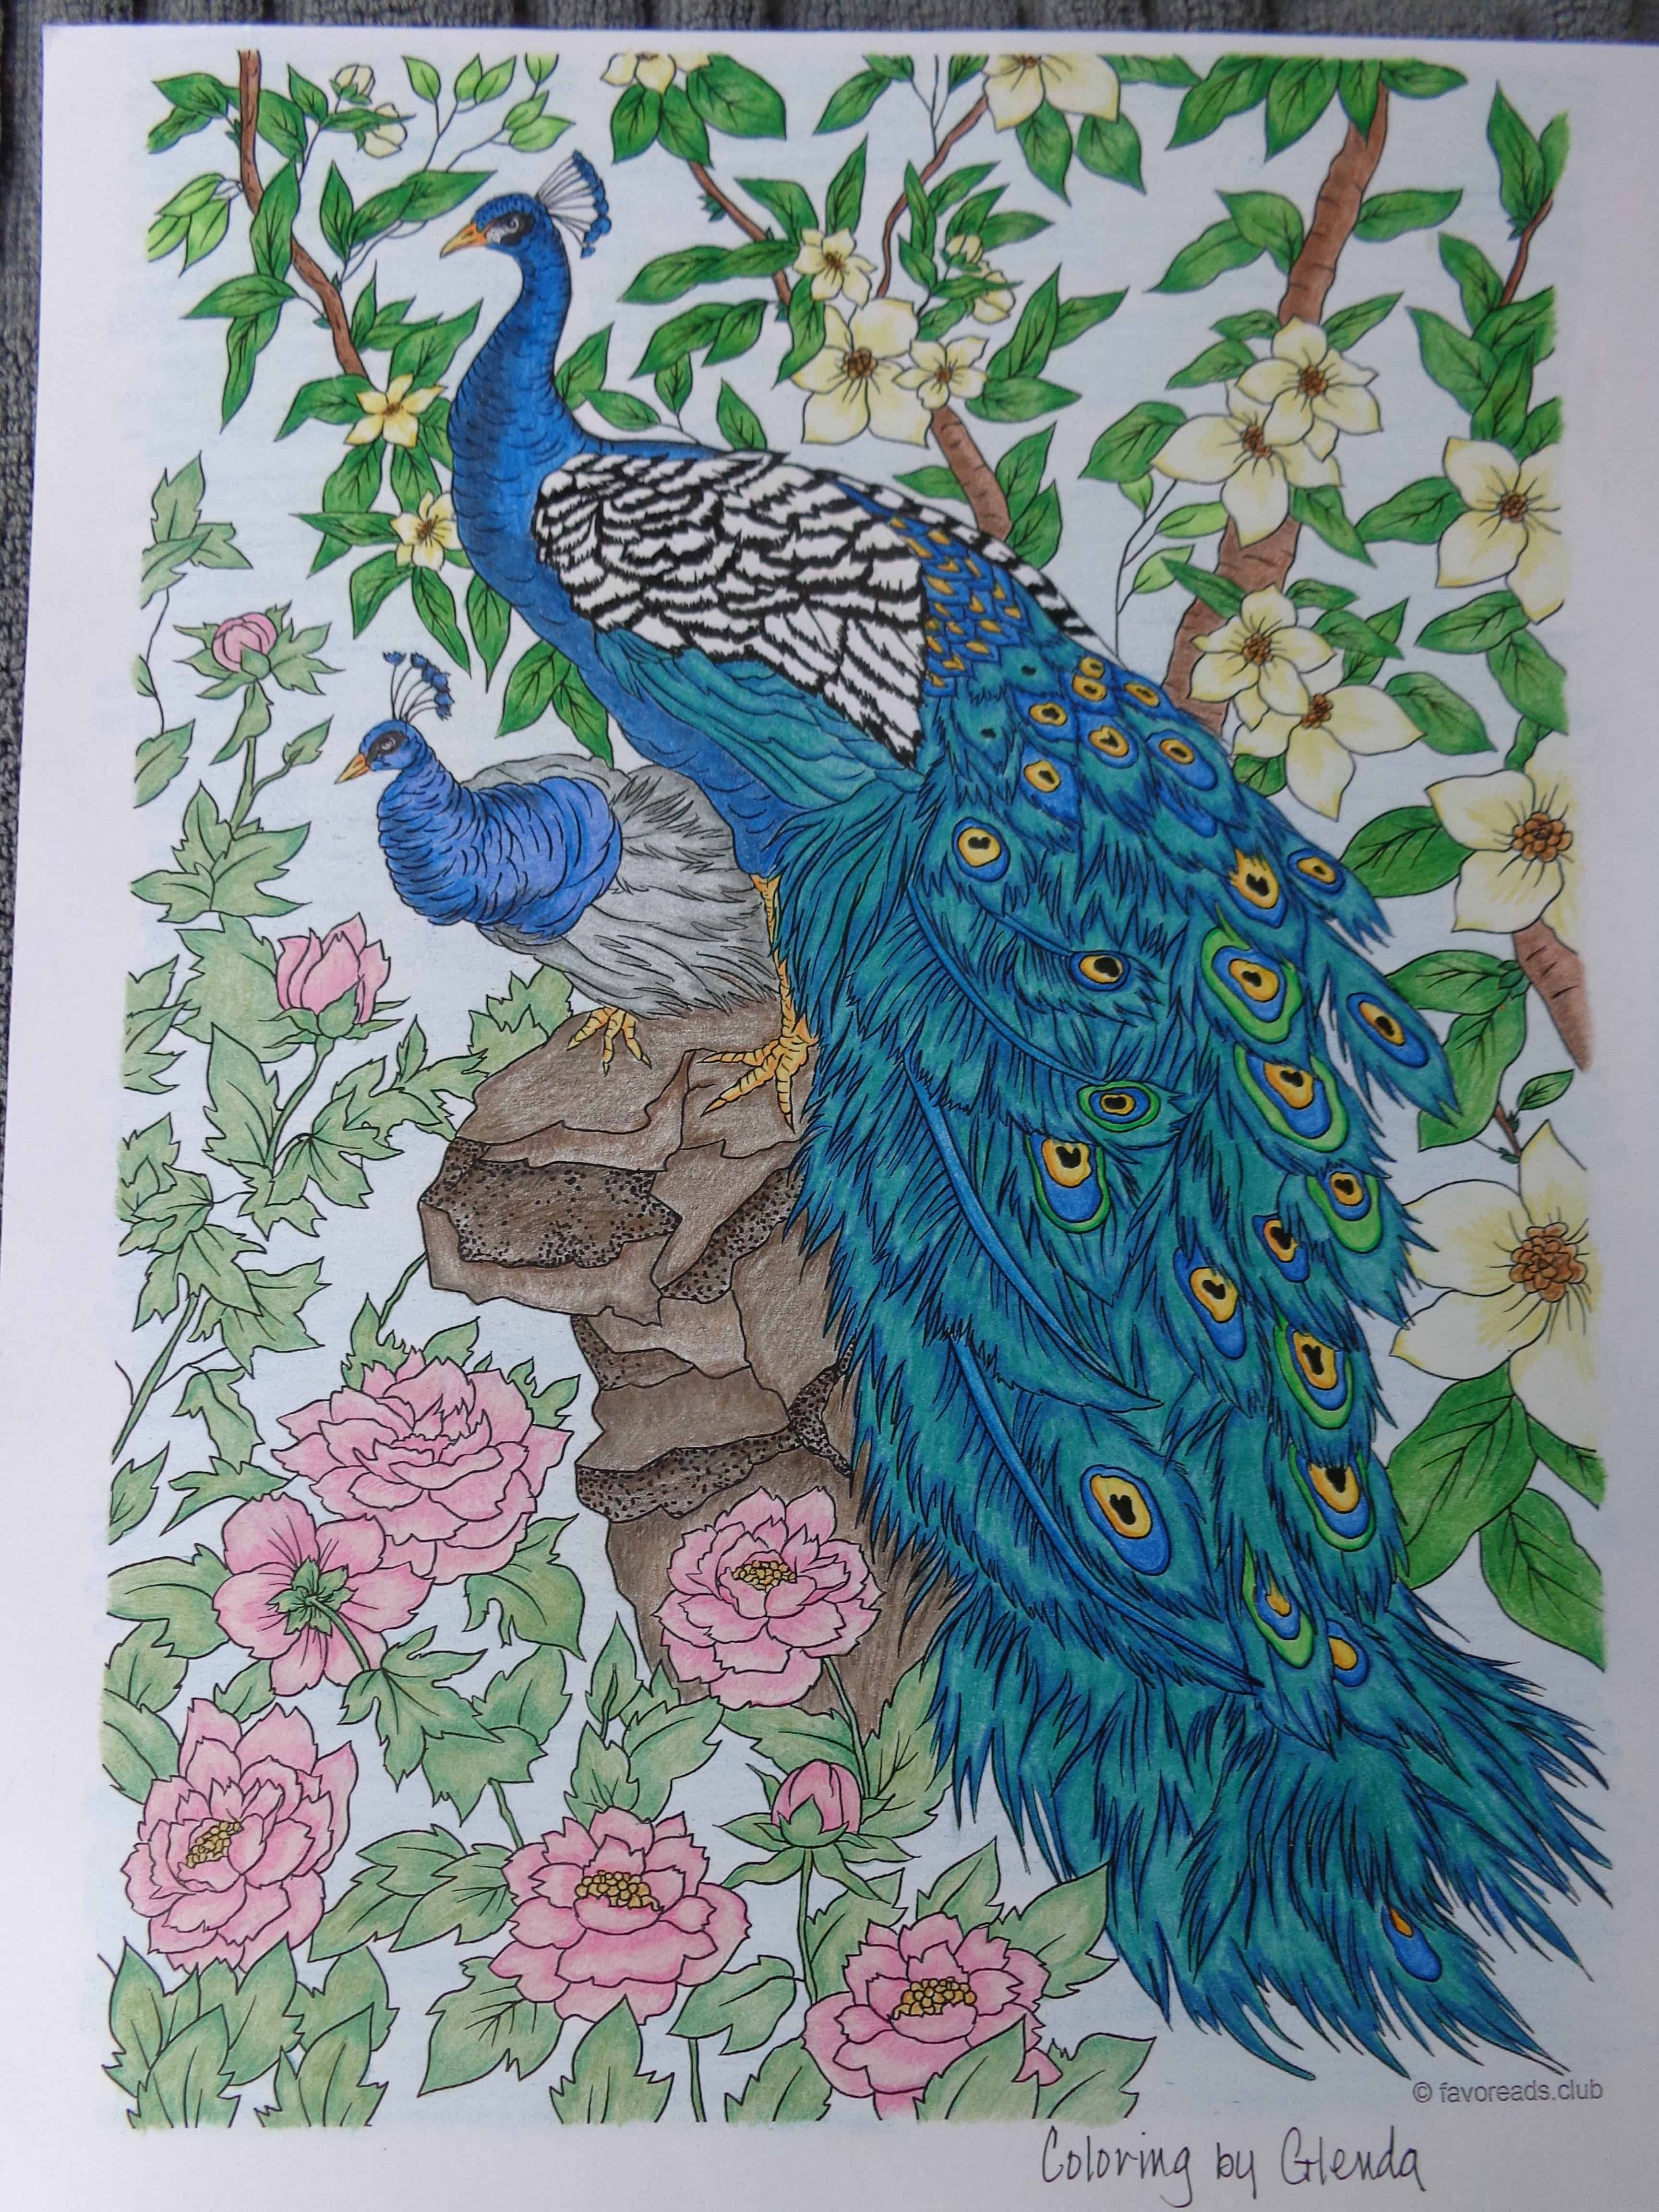 Stunning Peacocks Colored By Glenda Works Click On The Image To See The Original Coloring Design Peacock Painting Drawings Nature Art